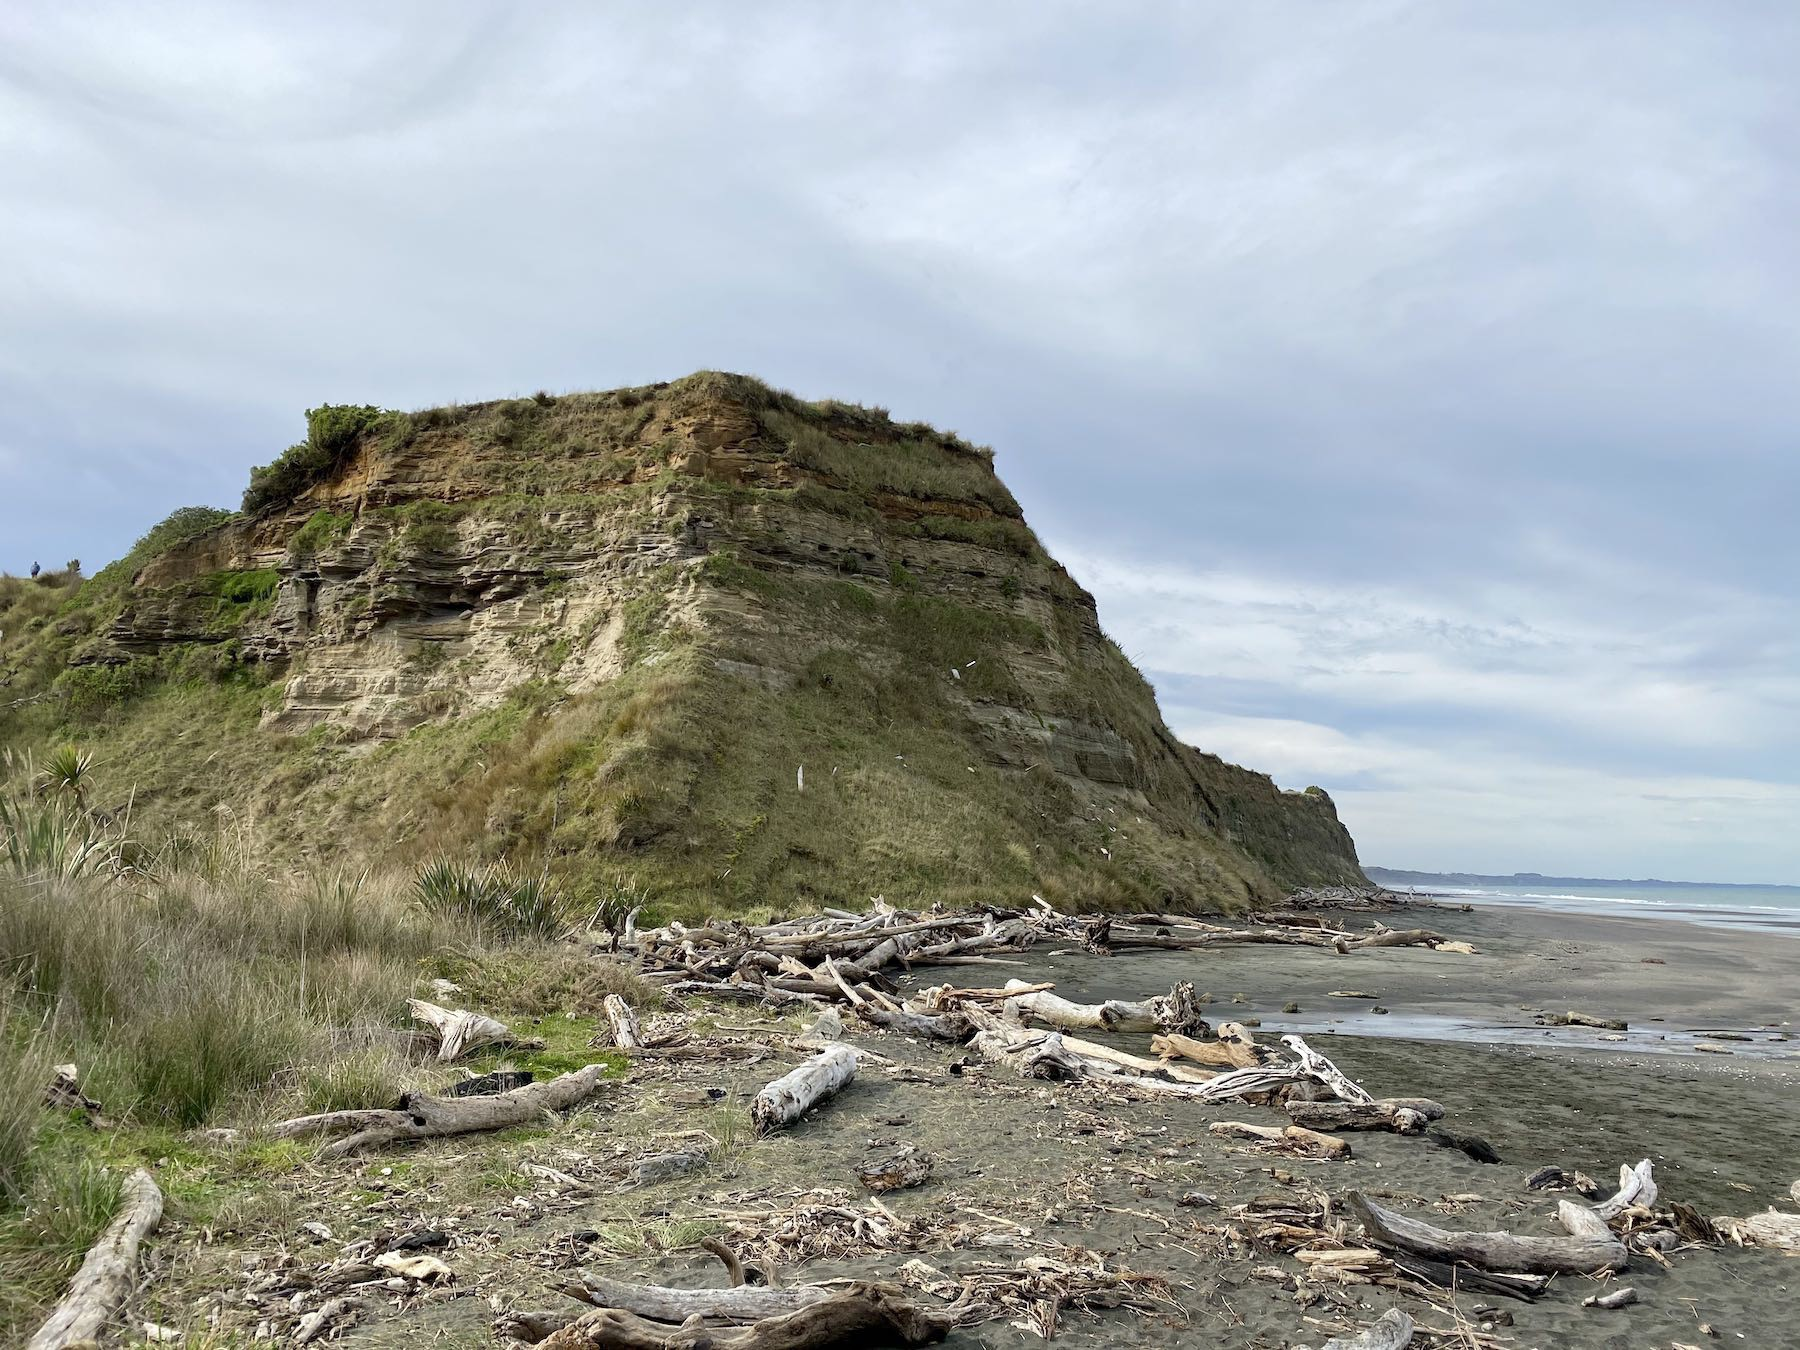 Across sand and driftwood to another hill.